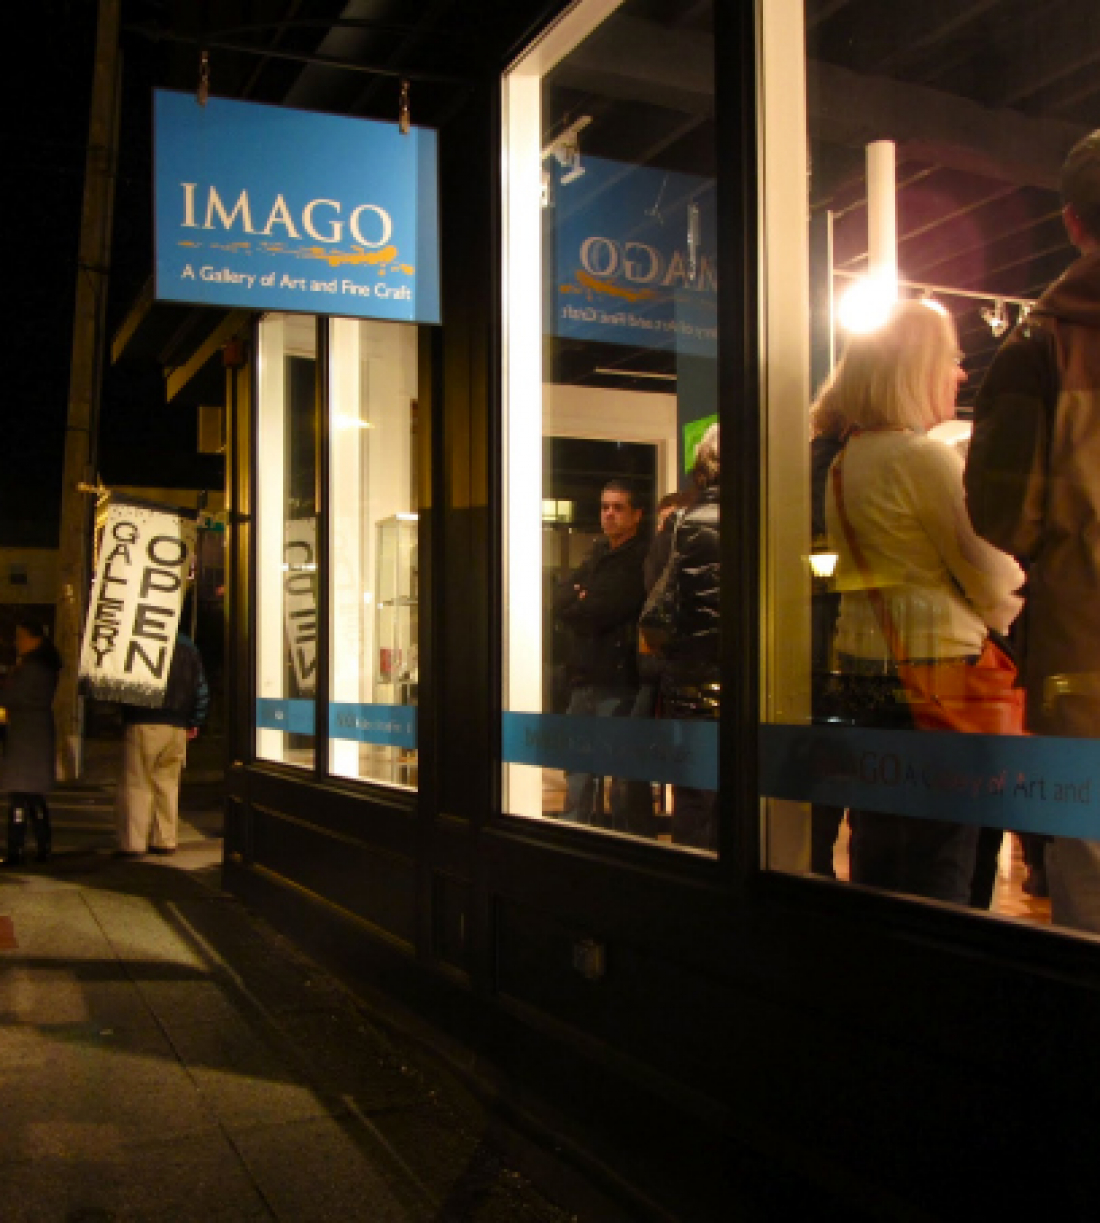 Imago Foundation for the Arts: arts programs, exhibitions and other community events